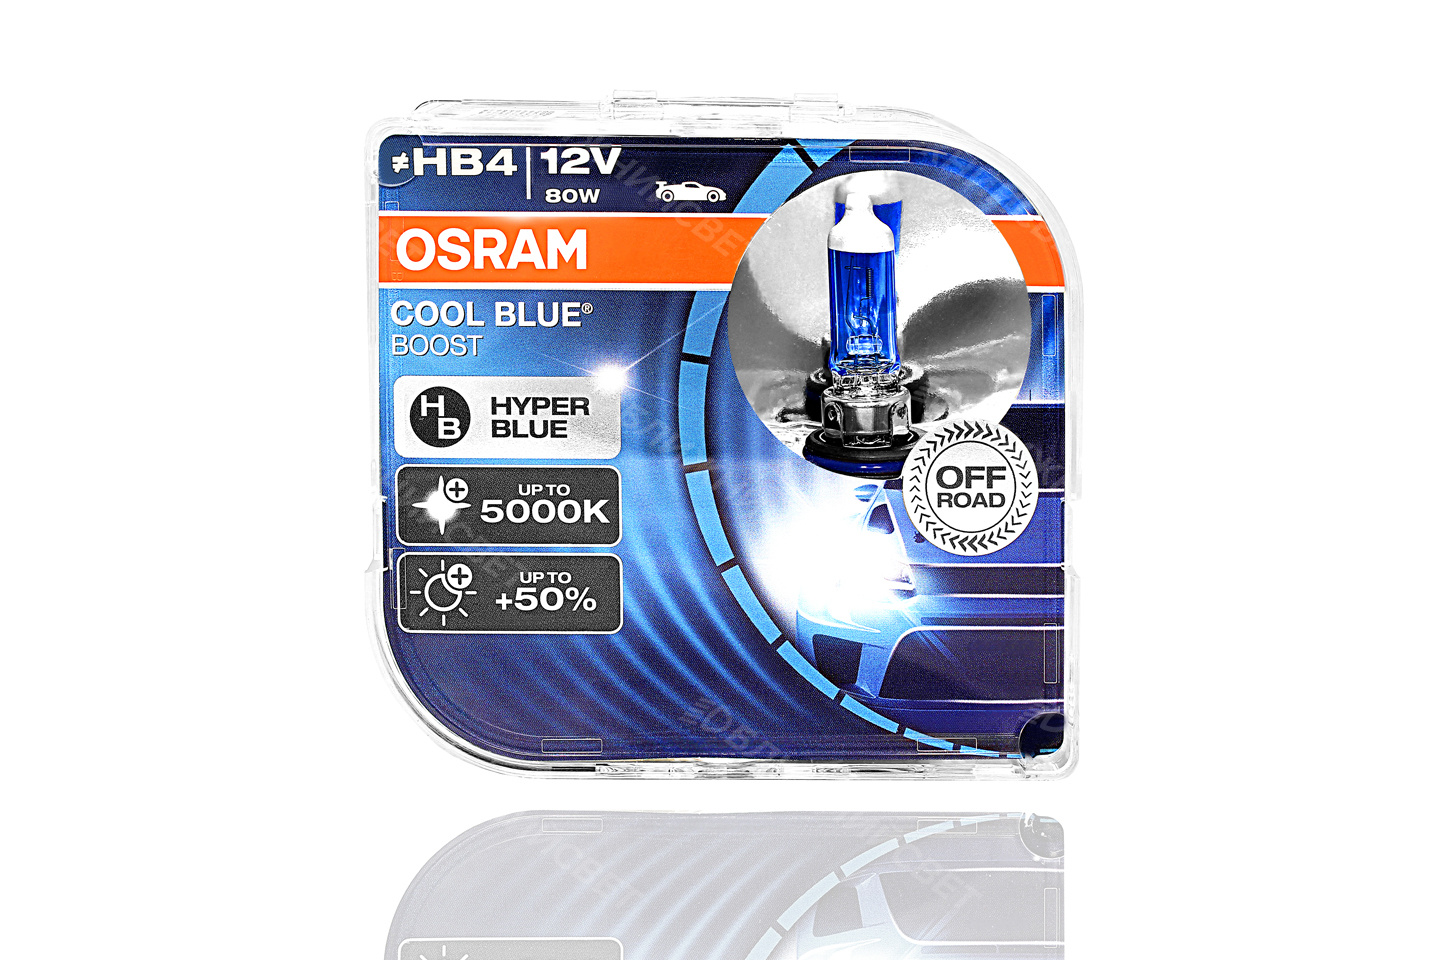 Фото Комплект галогенных автоламп OSRAM HB4 9006 COOL BLUE BOOST 5000°К +50% света (12V,80W) 69006CBB-HCB артикул 69006CBB-HCB